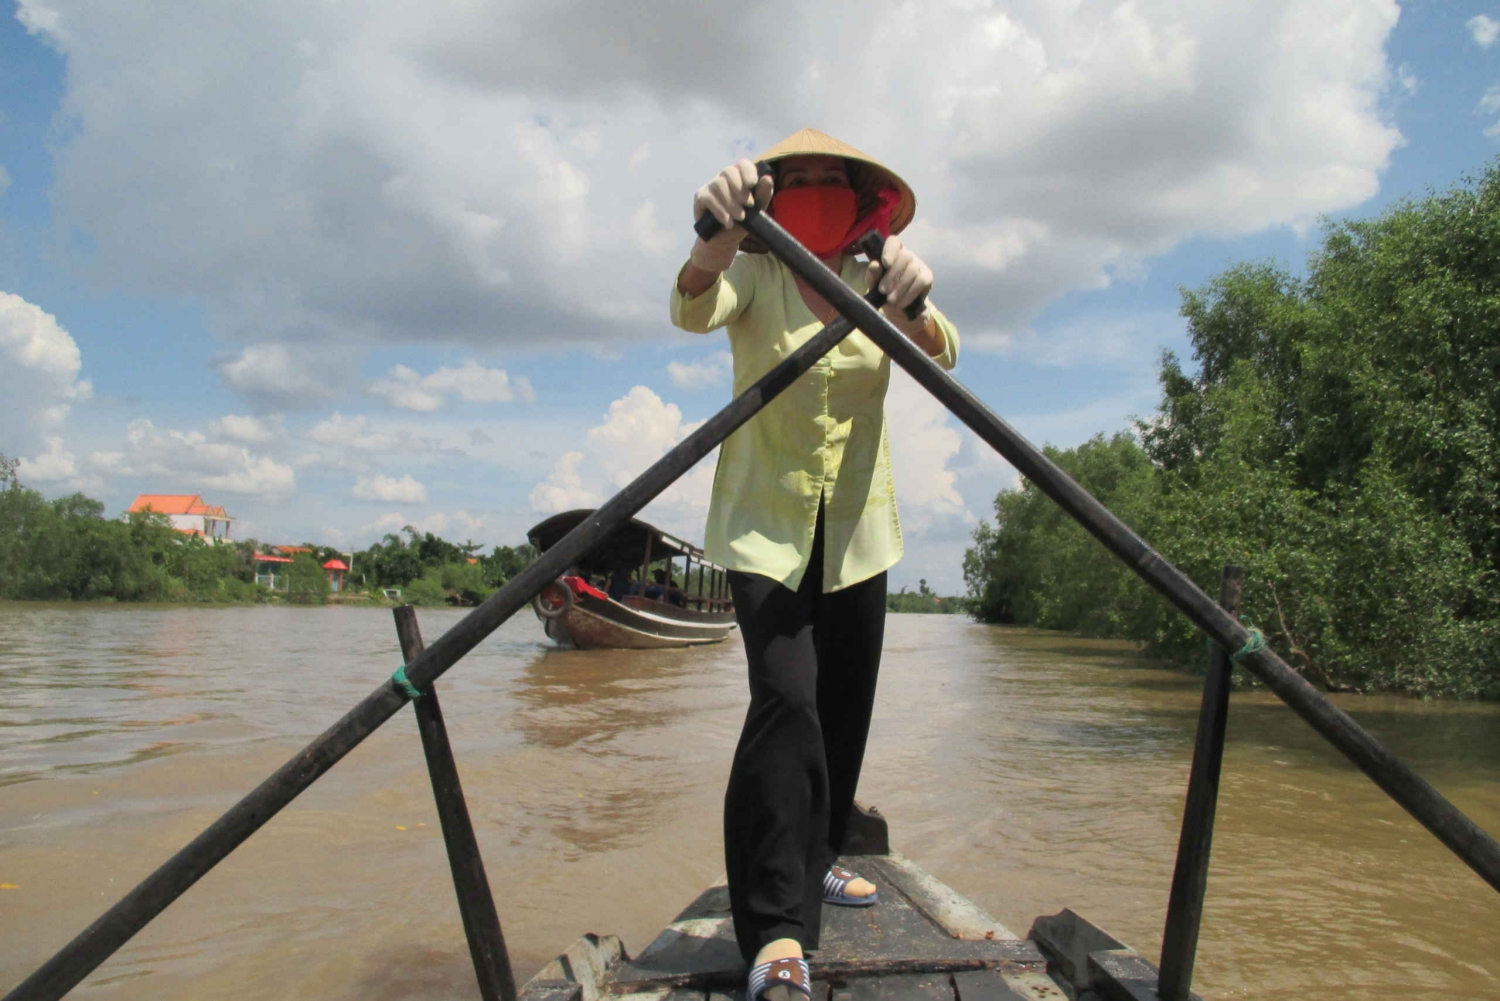 Mekong Delta Cruise & Floating Market from Ho Chi Minh City